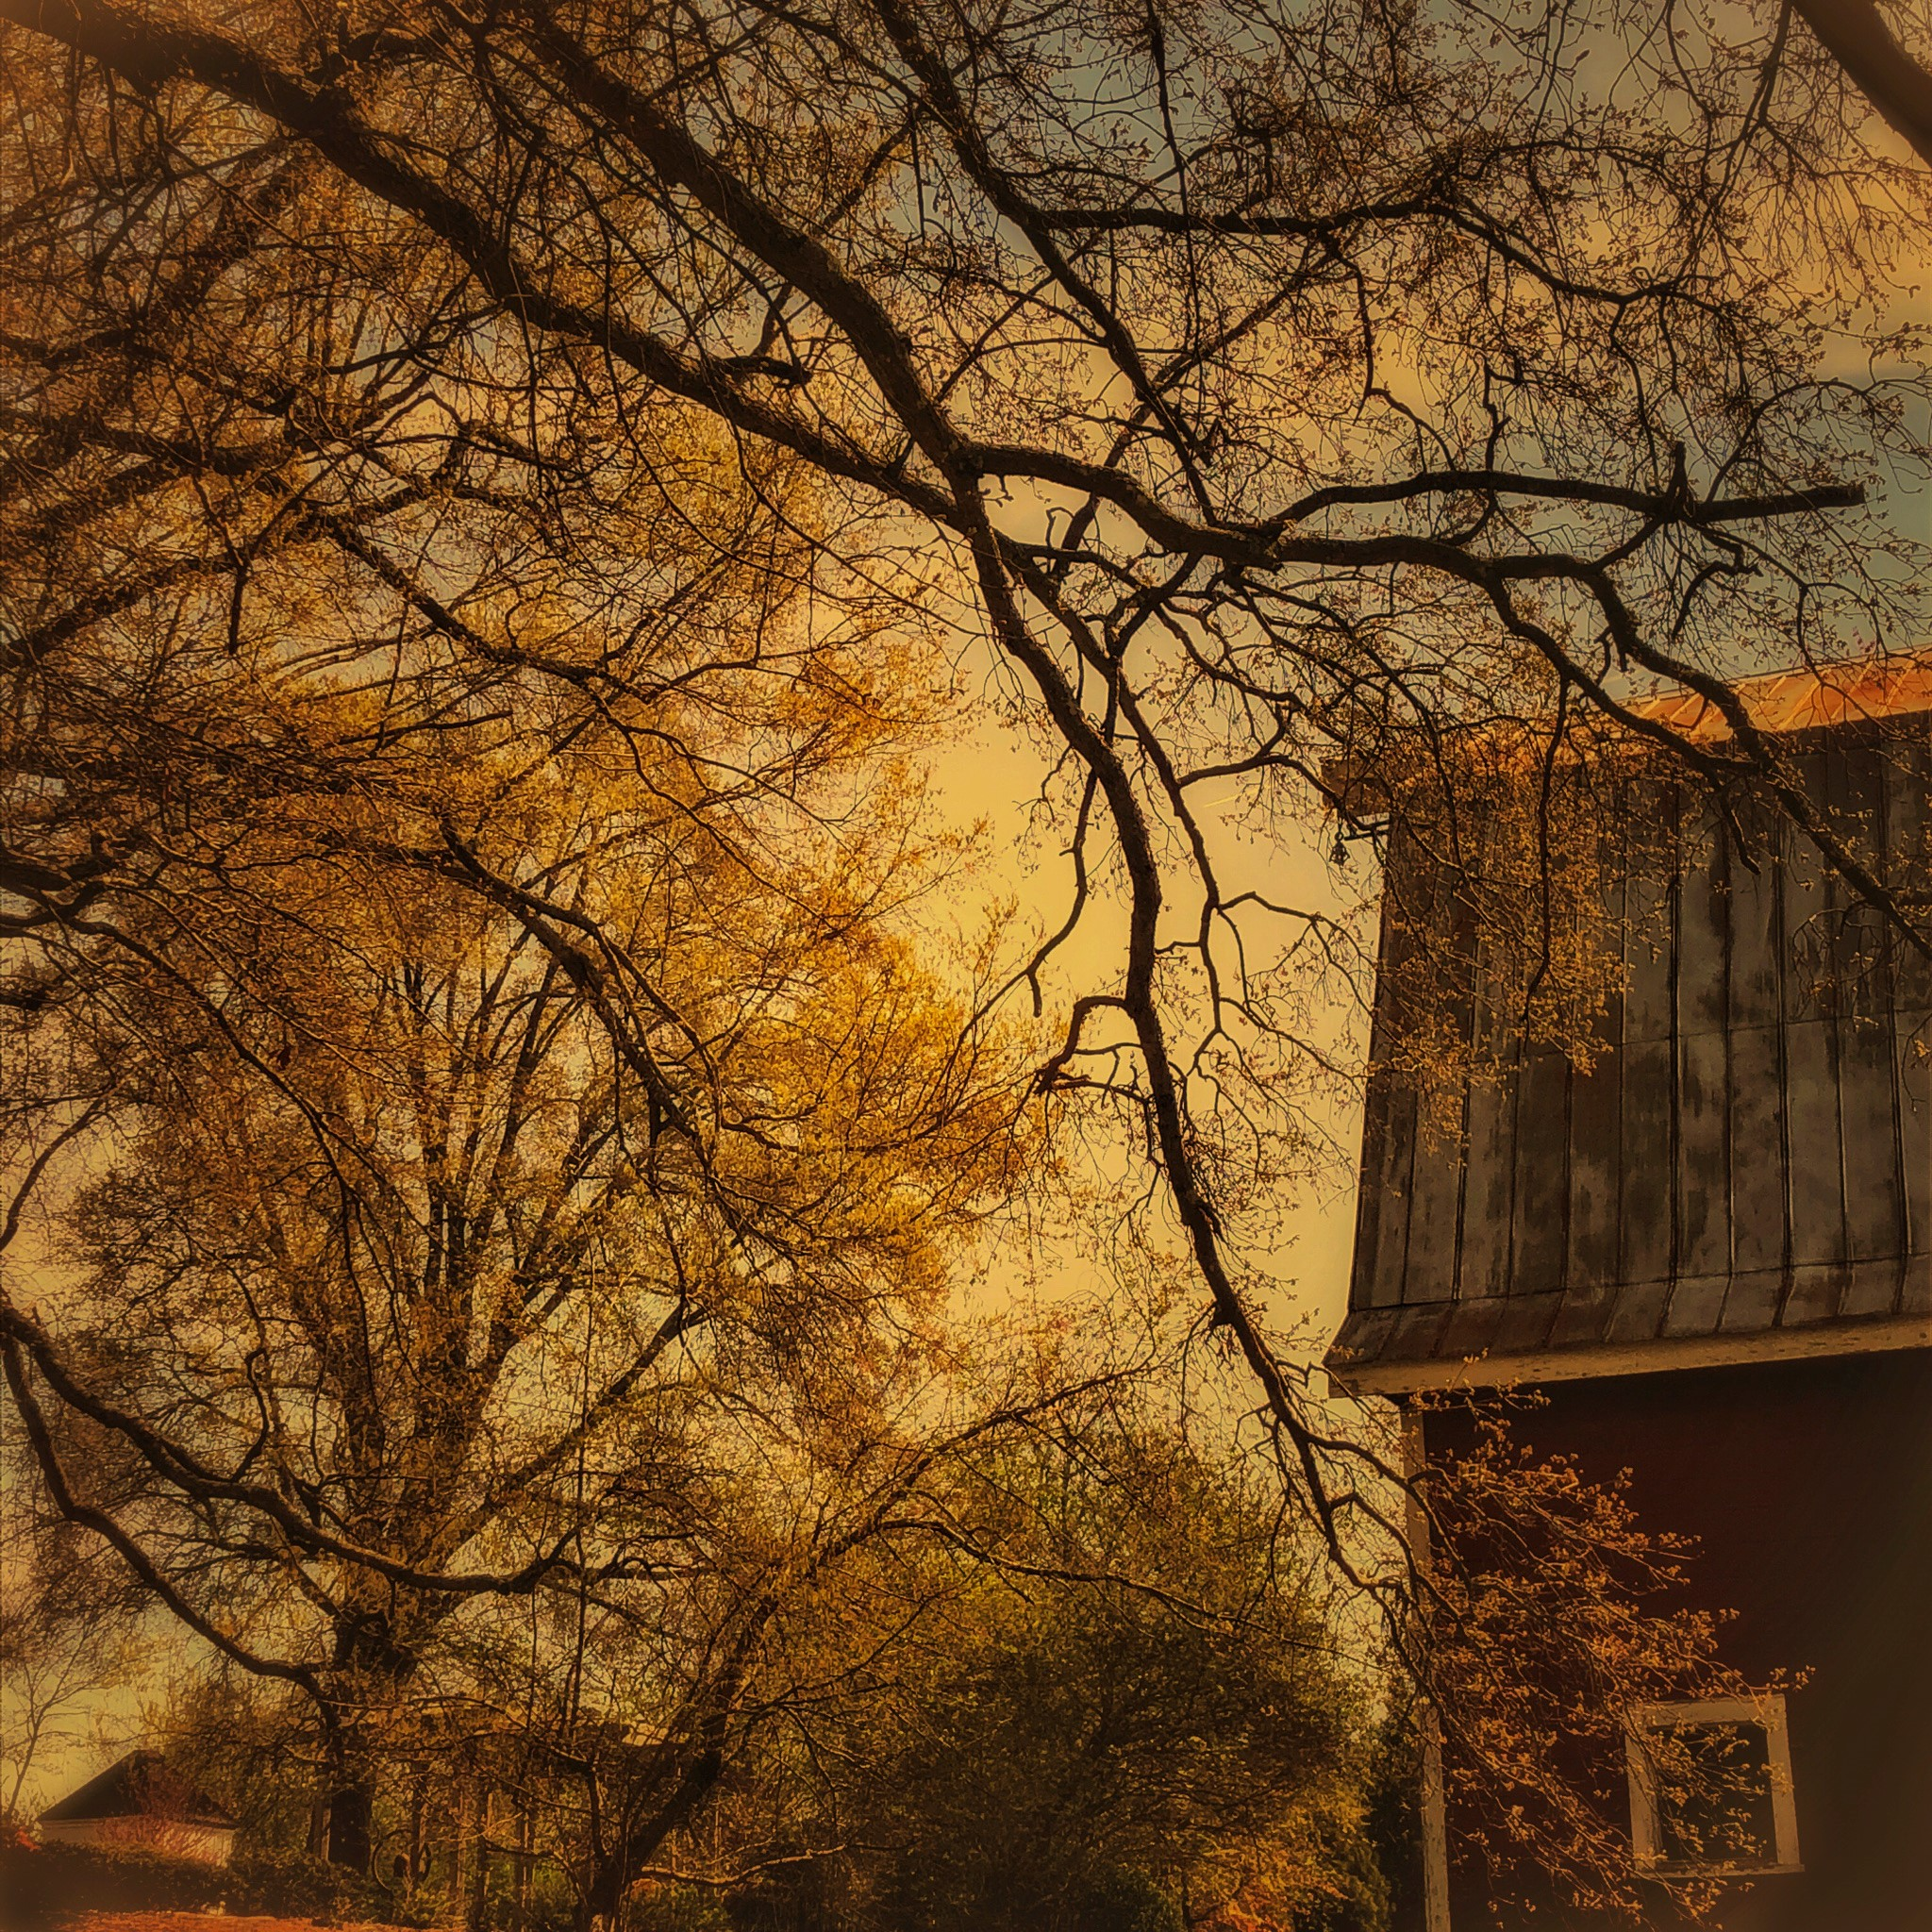 BARBARA TYROLER - Barn below Bereavement CenterContemporary photography conceived through the synthesis of light, imagination, and technology. www.barbaratyroler.com https://www.instagram.com/btyroler/